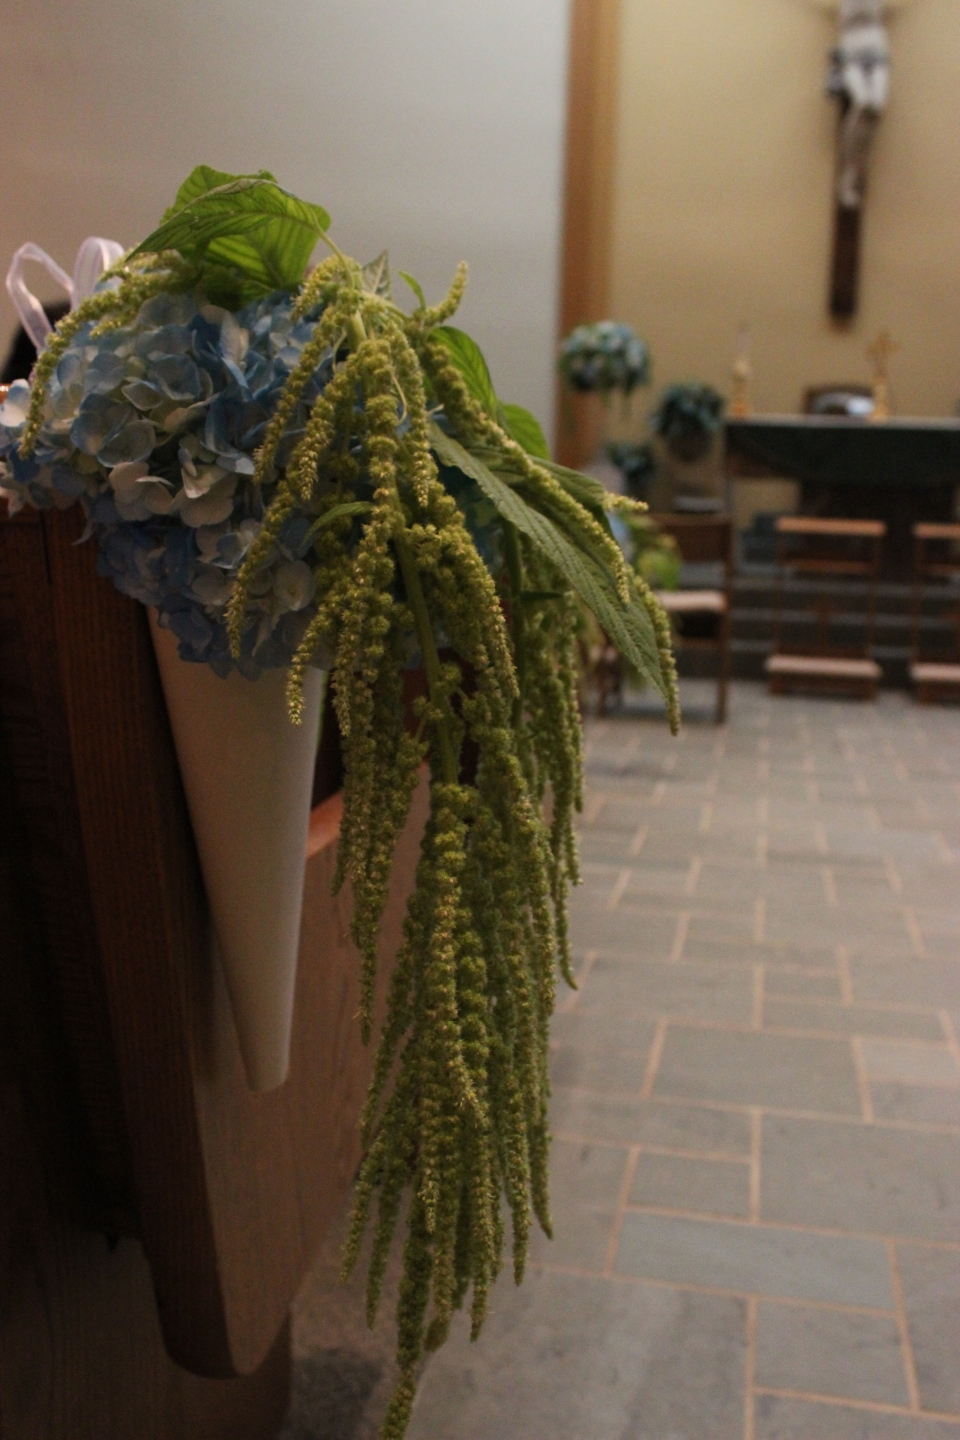 Pew Marker of Hydrangea and Hanging Amaranthus